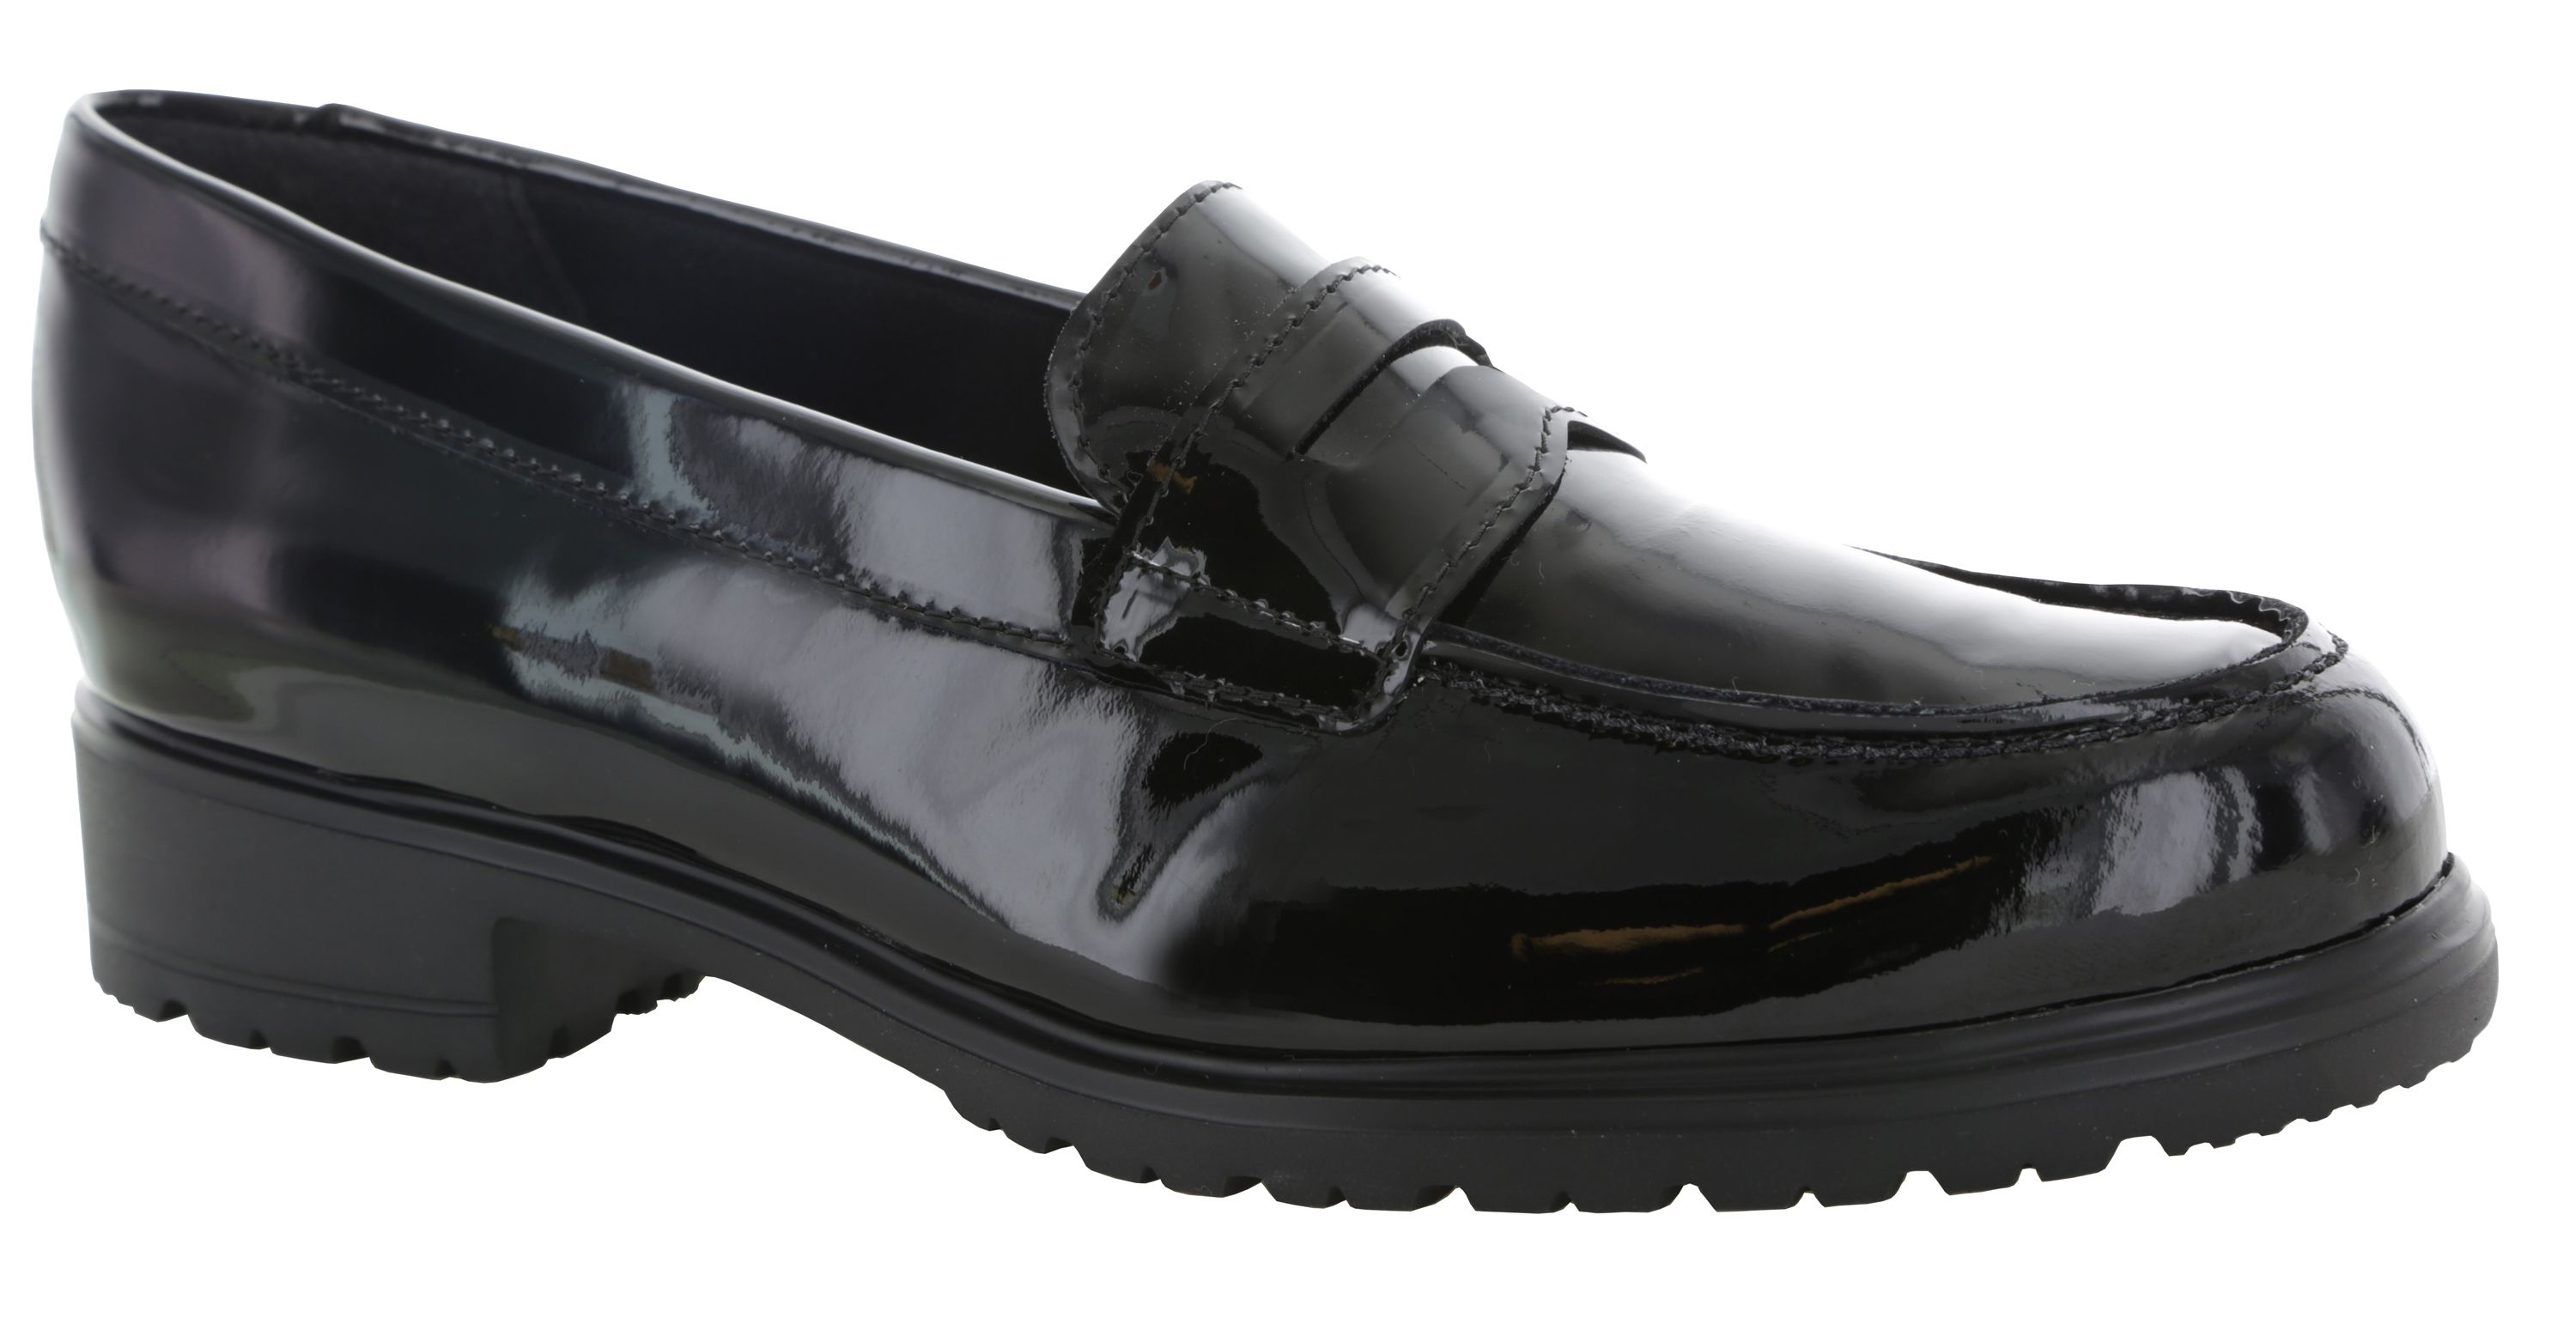 Black patent leather, very trendy, must have, penny loafer ...